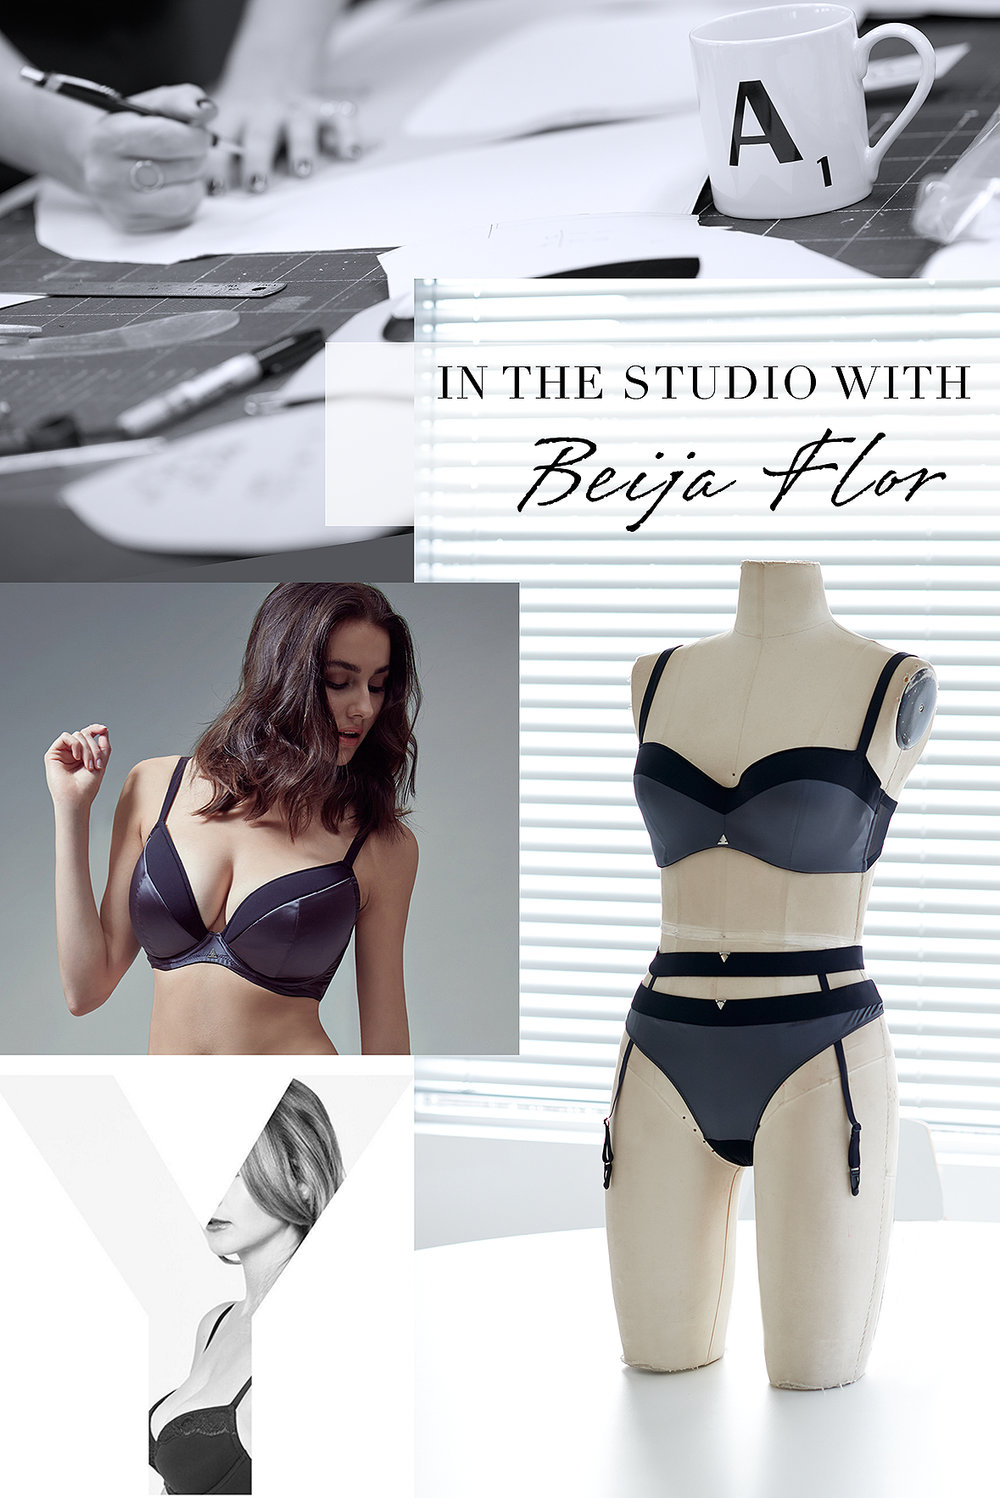 In-the-Studio-Interview-with-Beija-Flor-New-Lingerie-Brand-2016-Lingerie-La-Femme-02.jpg